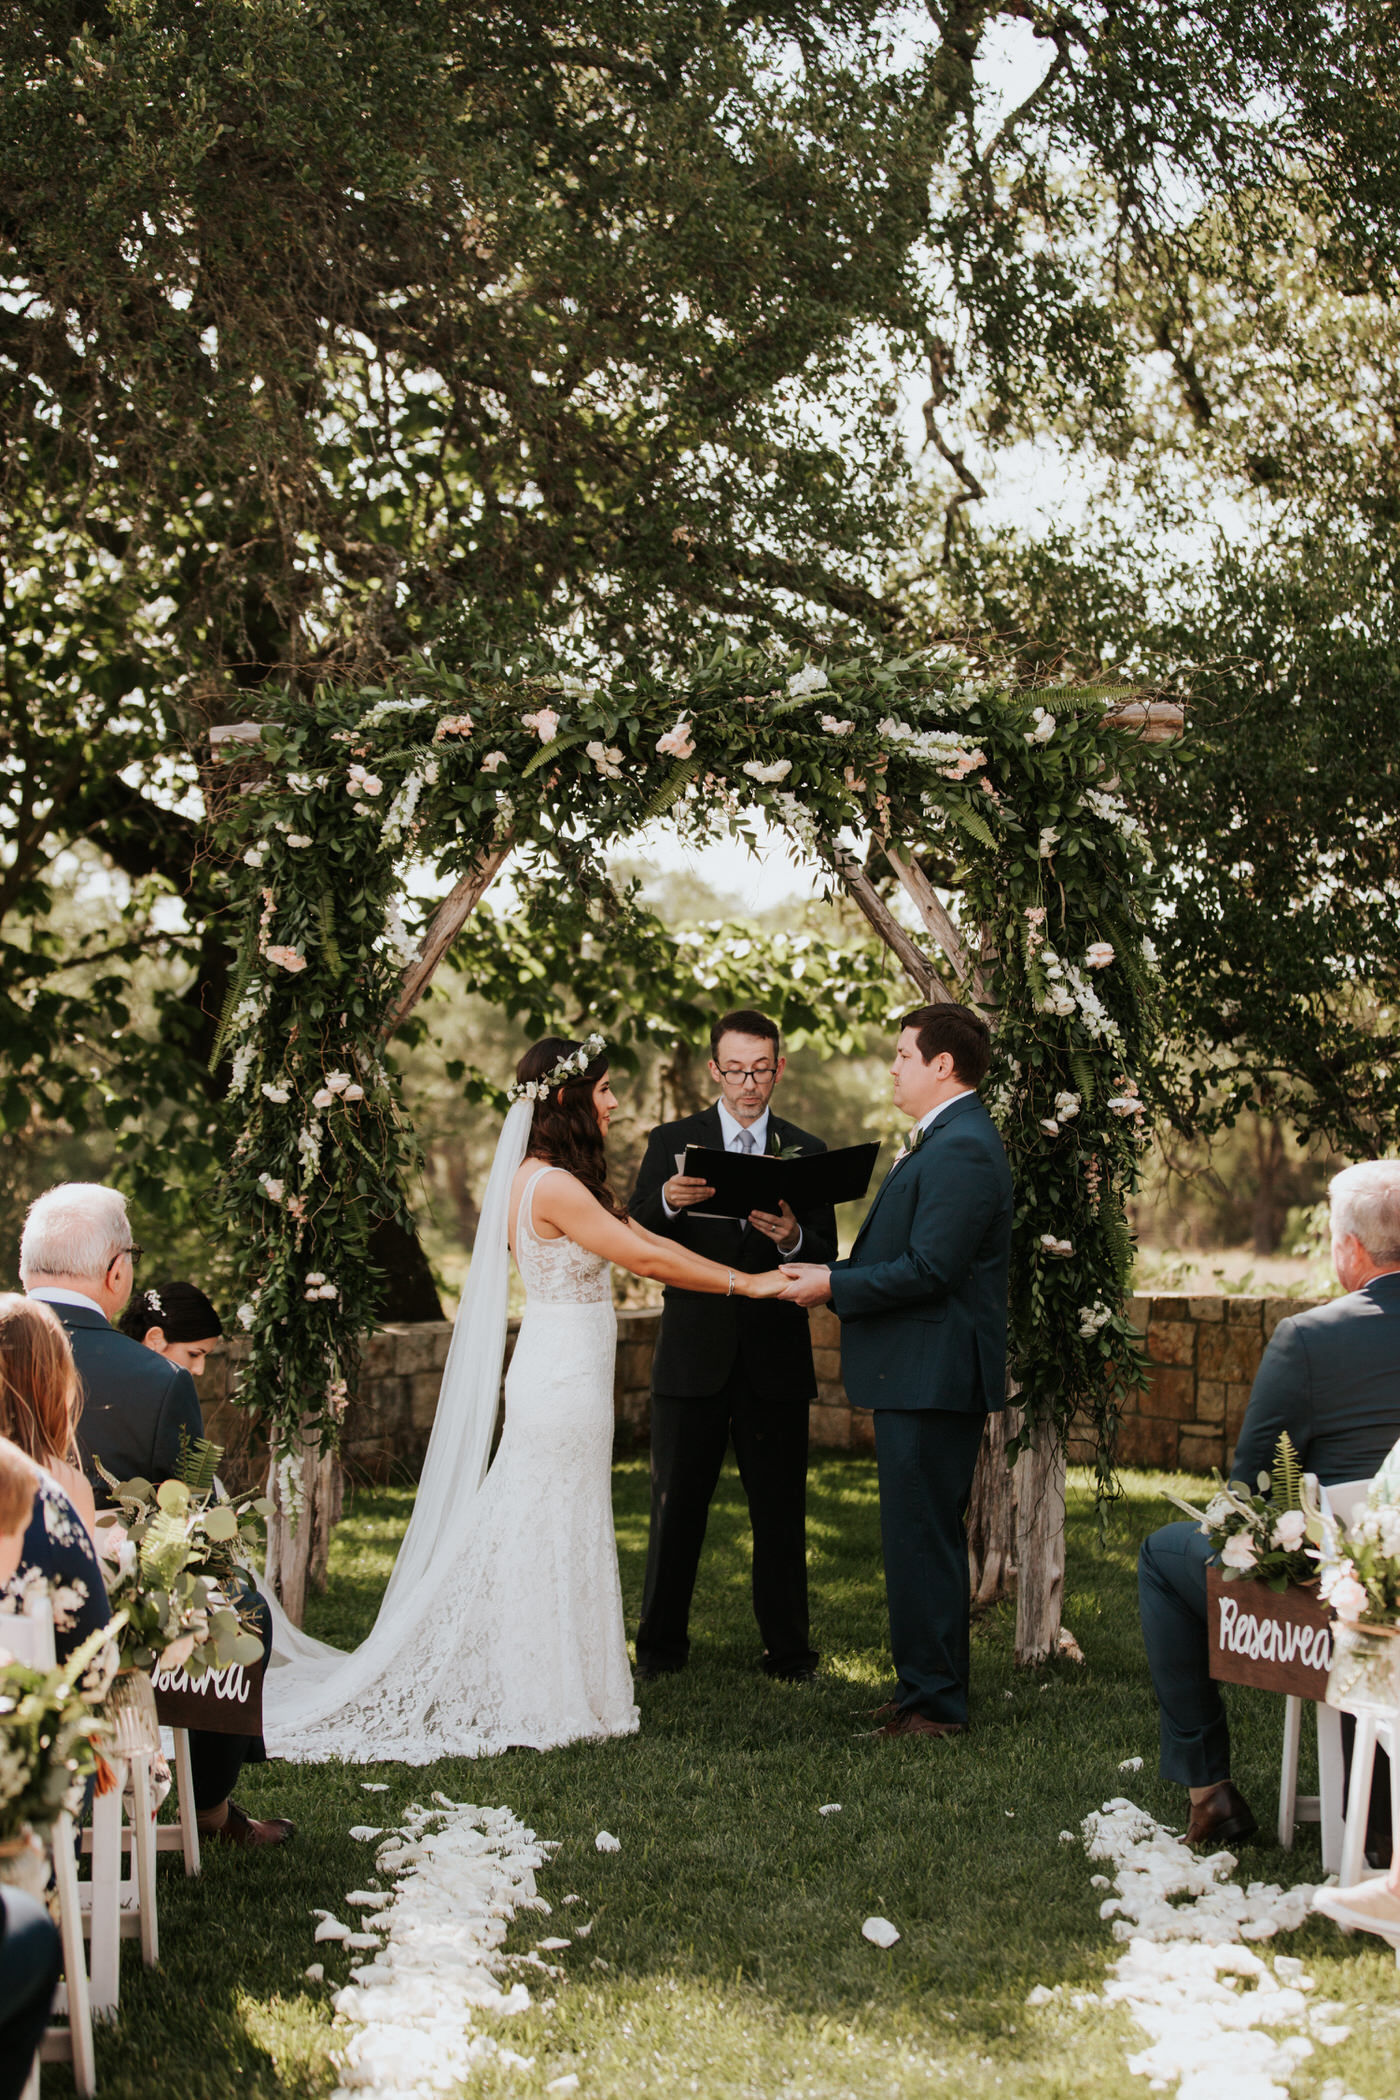 Couple getting married at Thurman's Mansion